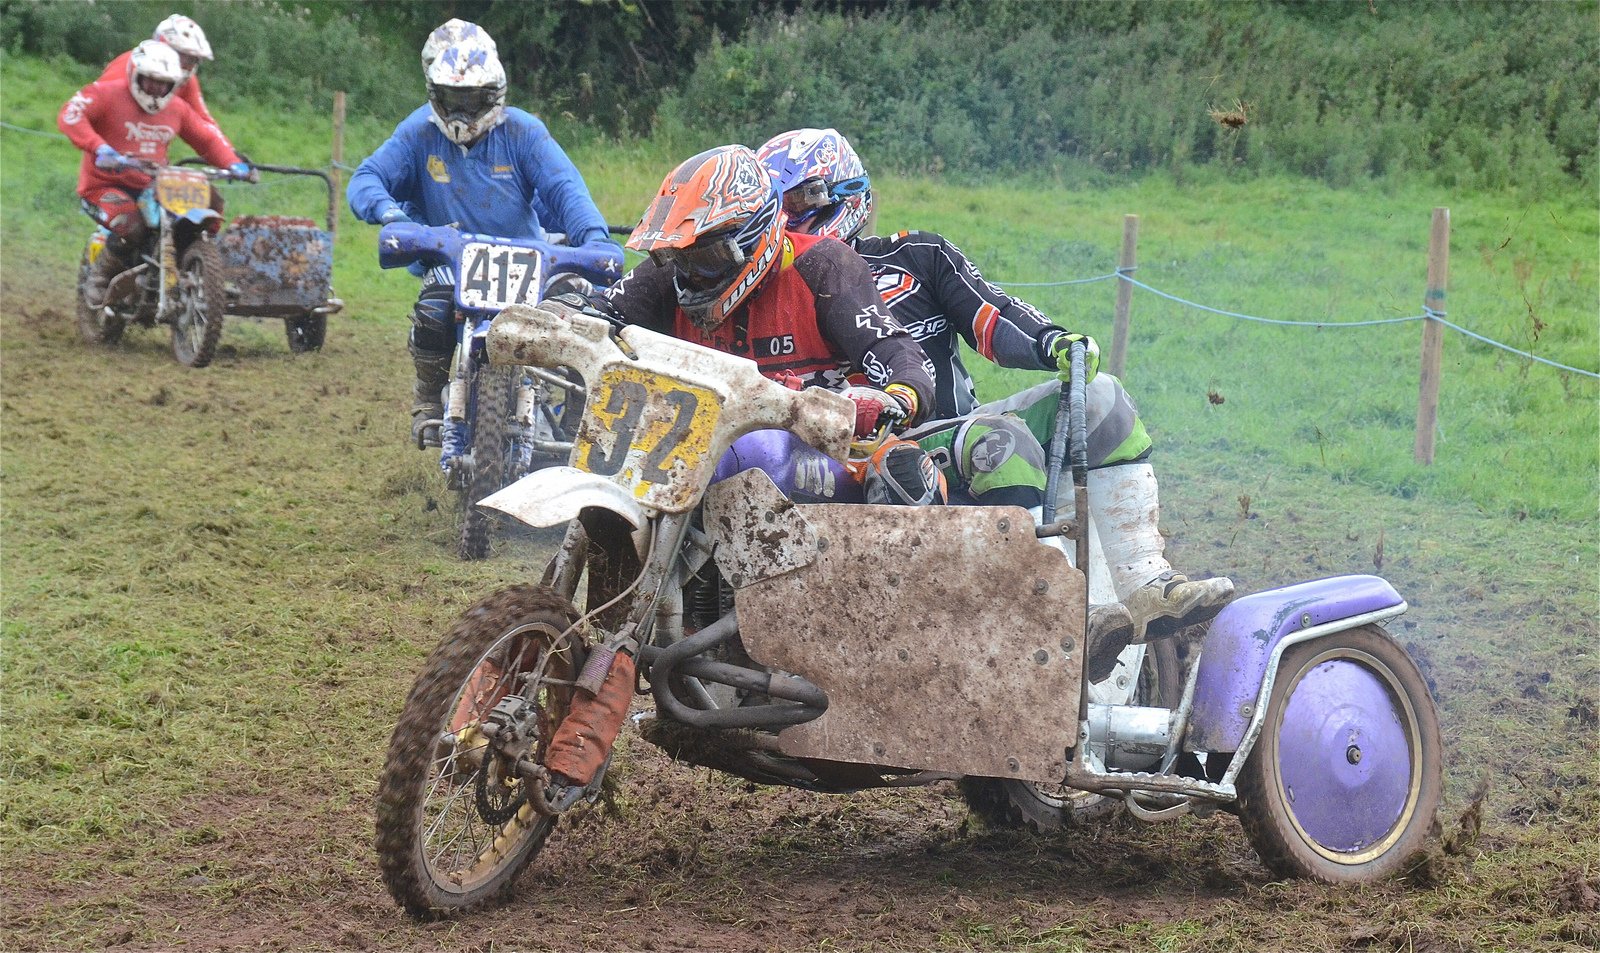 Llanthony Classic Scramble Photos September 2015 classicdirtbikerider.com..24